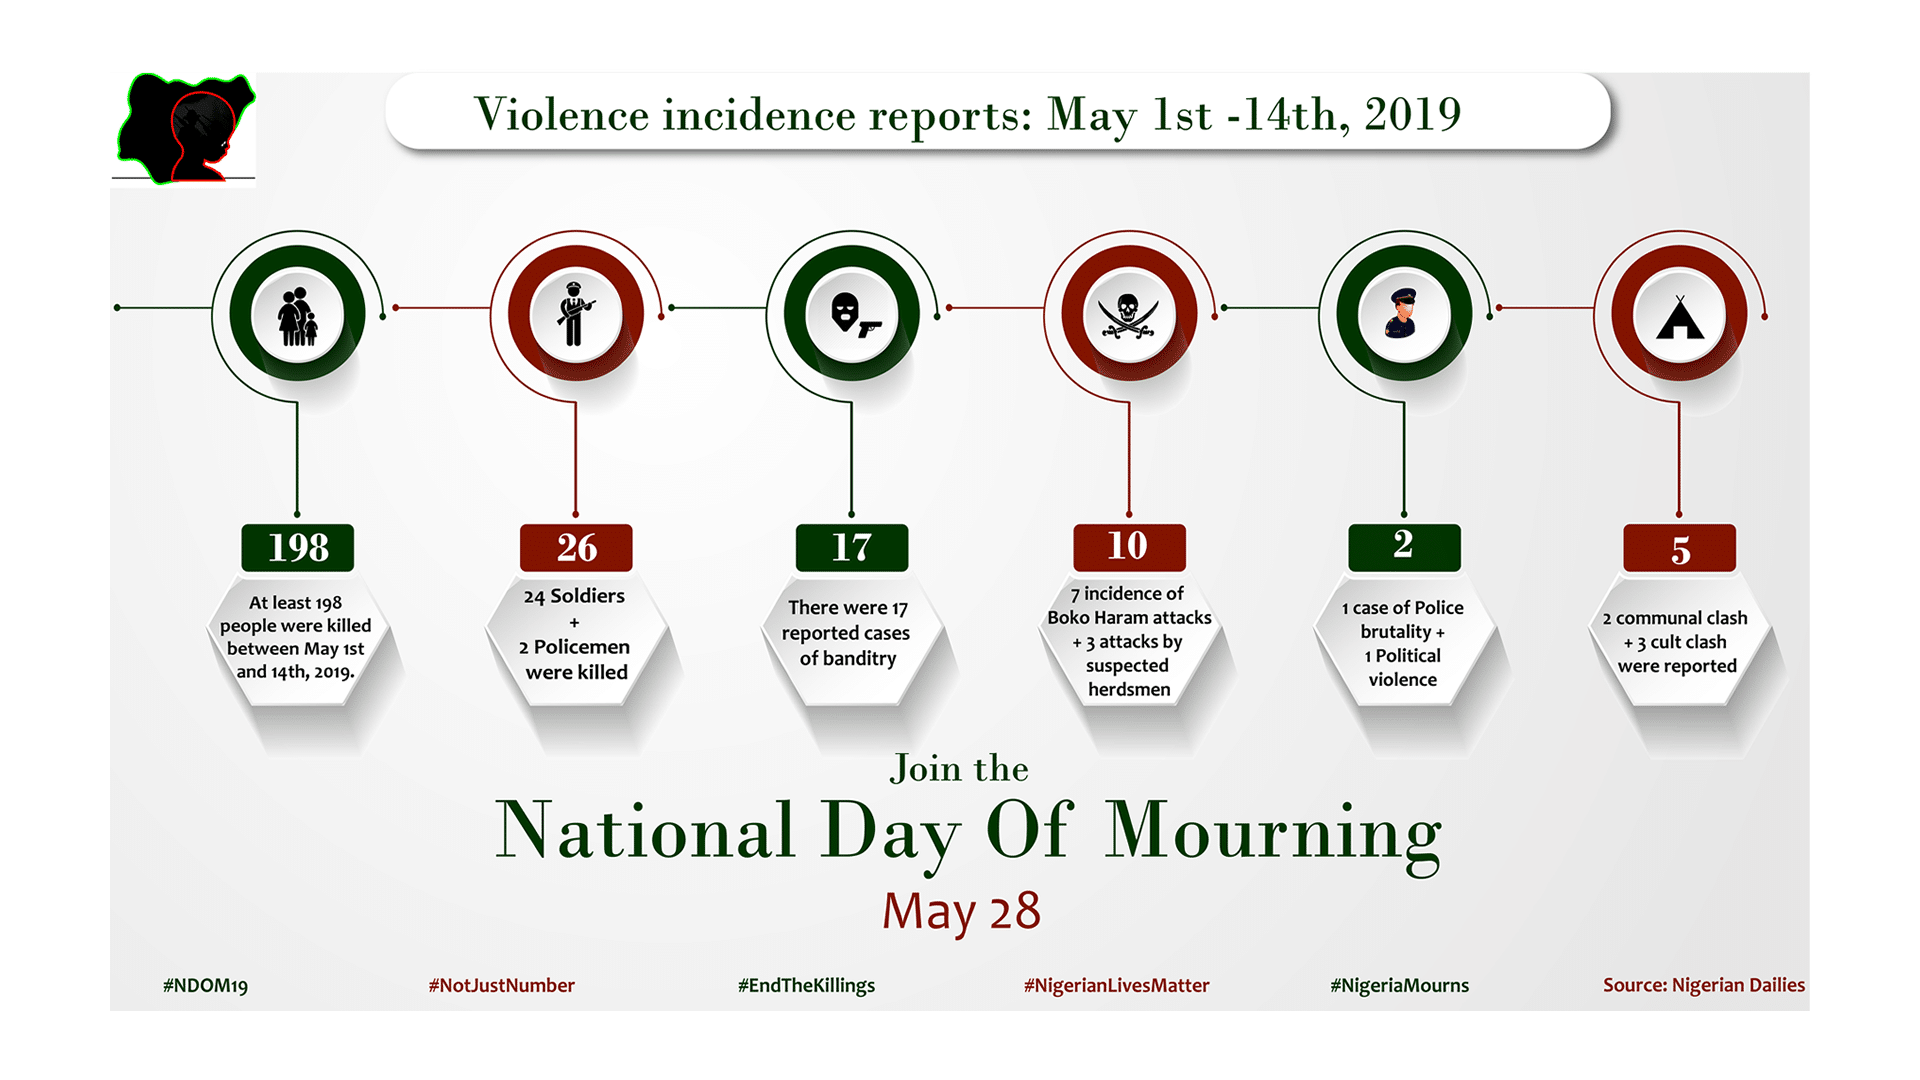 2violence incidence report, may 2019